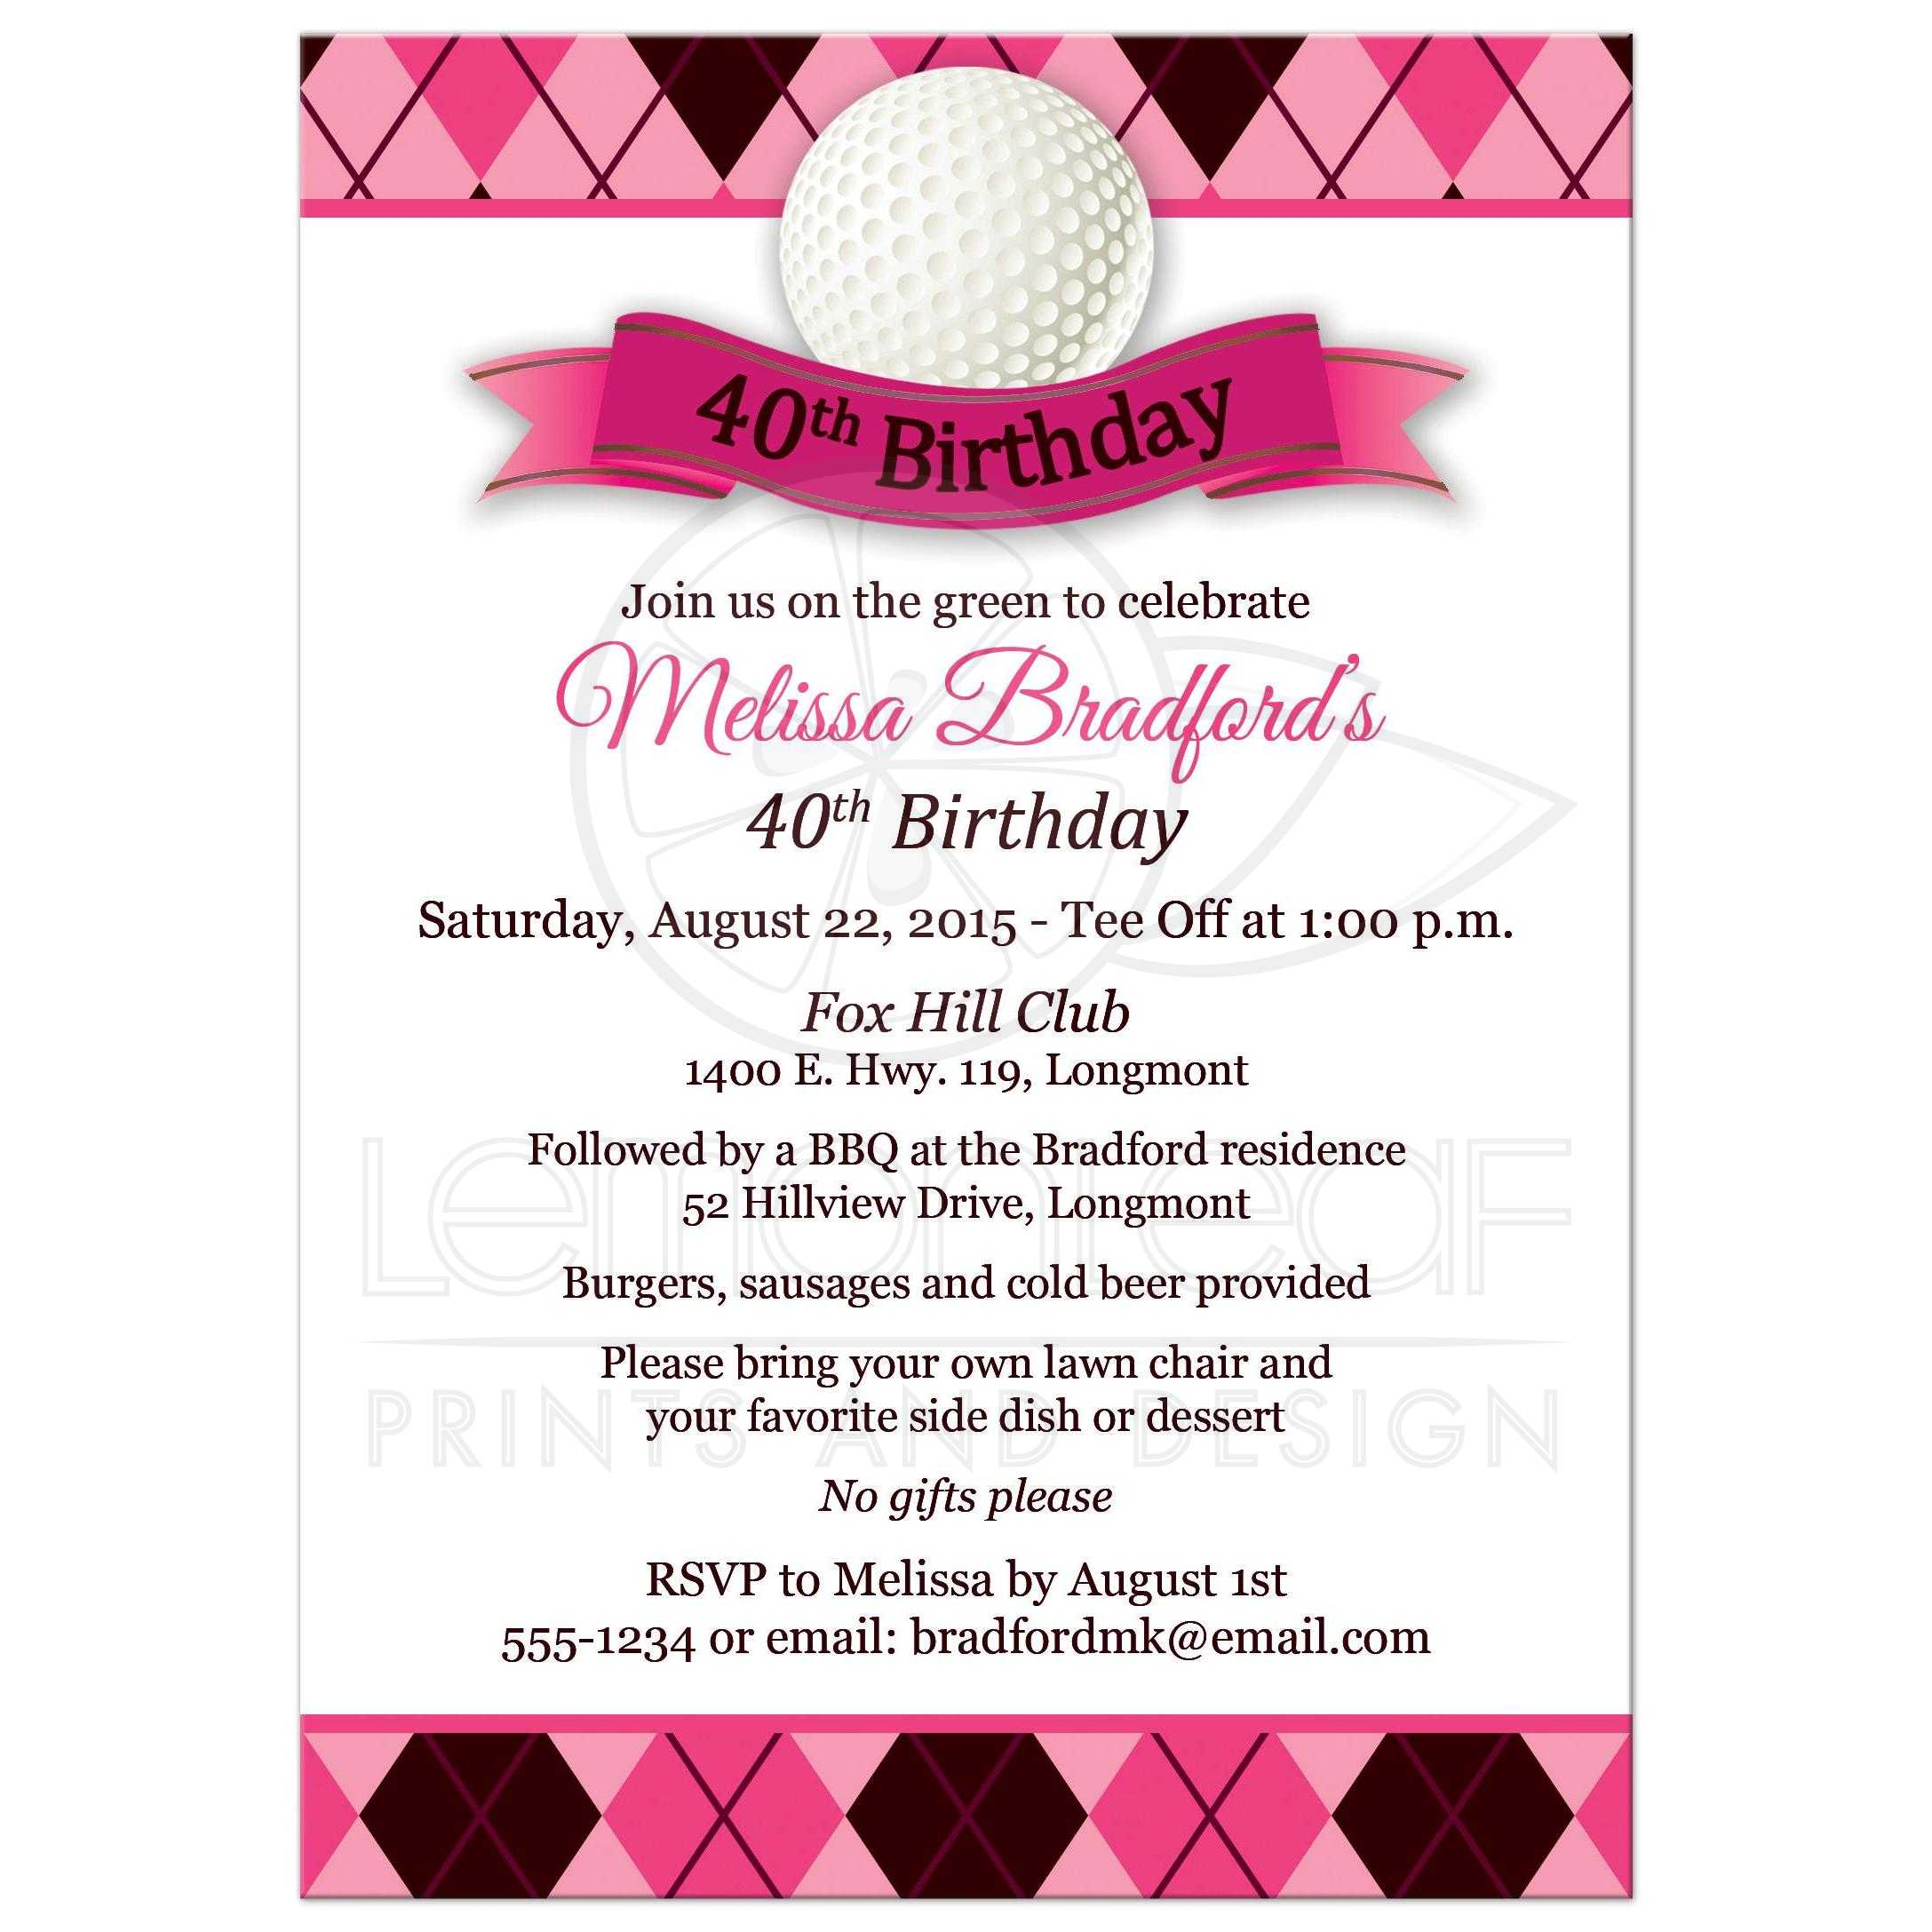 40th birthday party invitation golf theme pink black white best pink and black 40th birthday invitation for a woman golfer stopboris